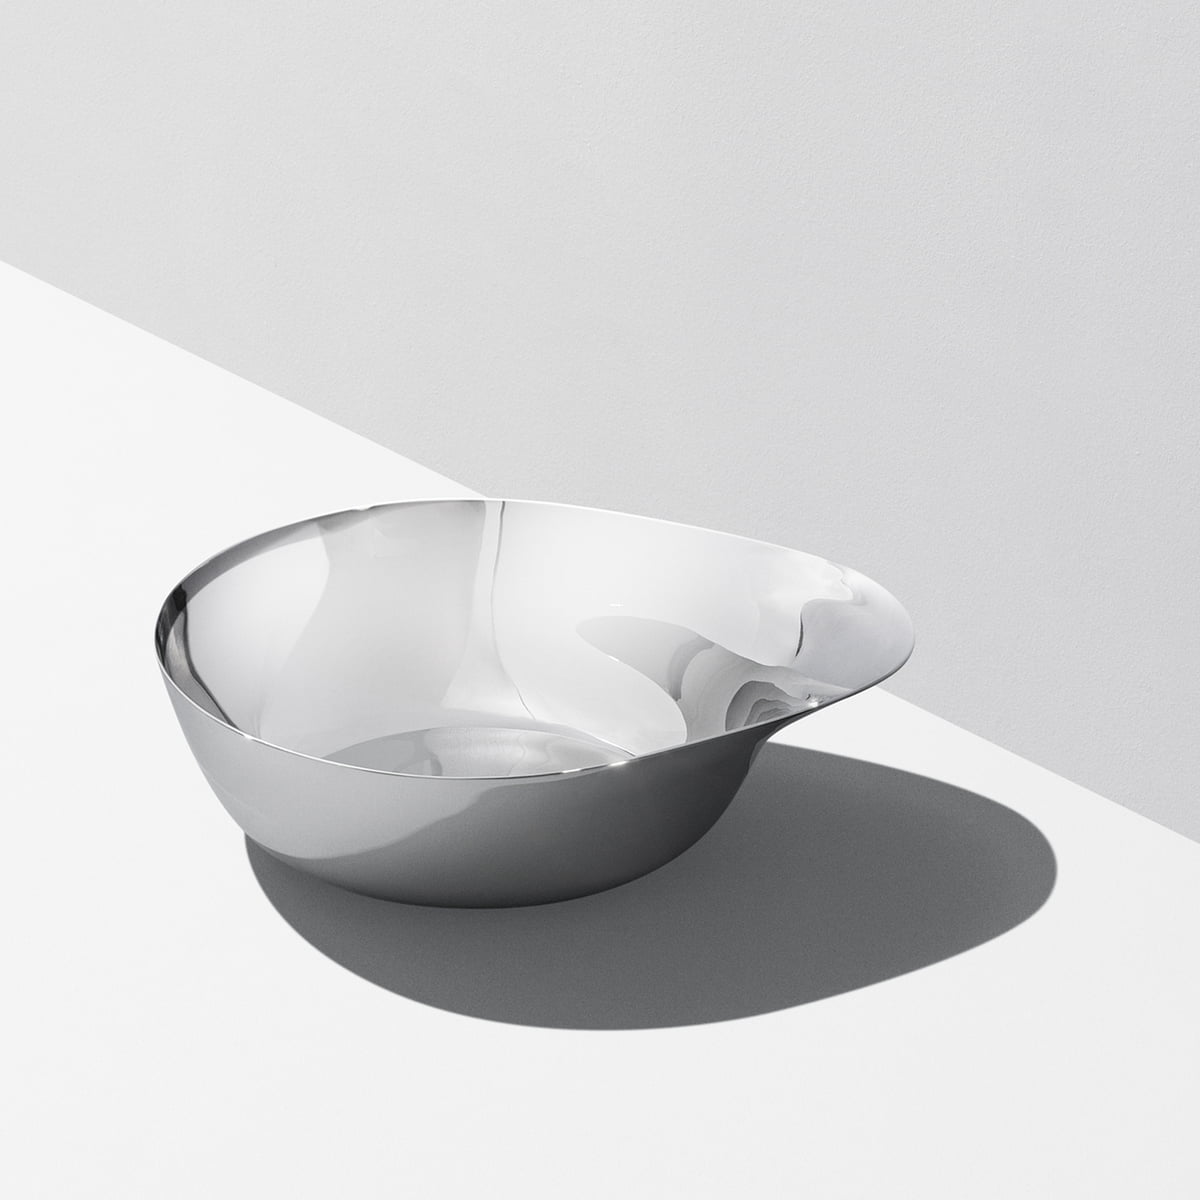 Barbry Snack Bowl by Georg Jensen in the shop